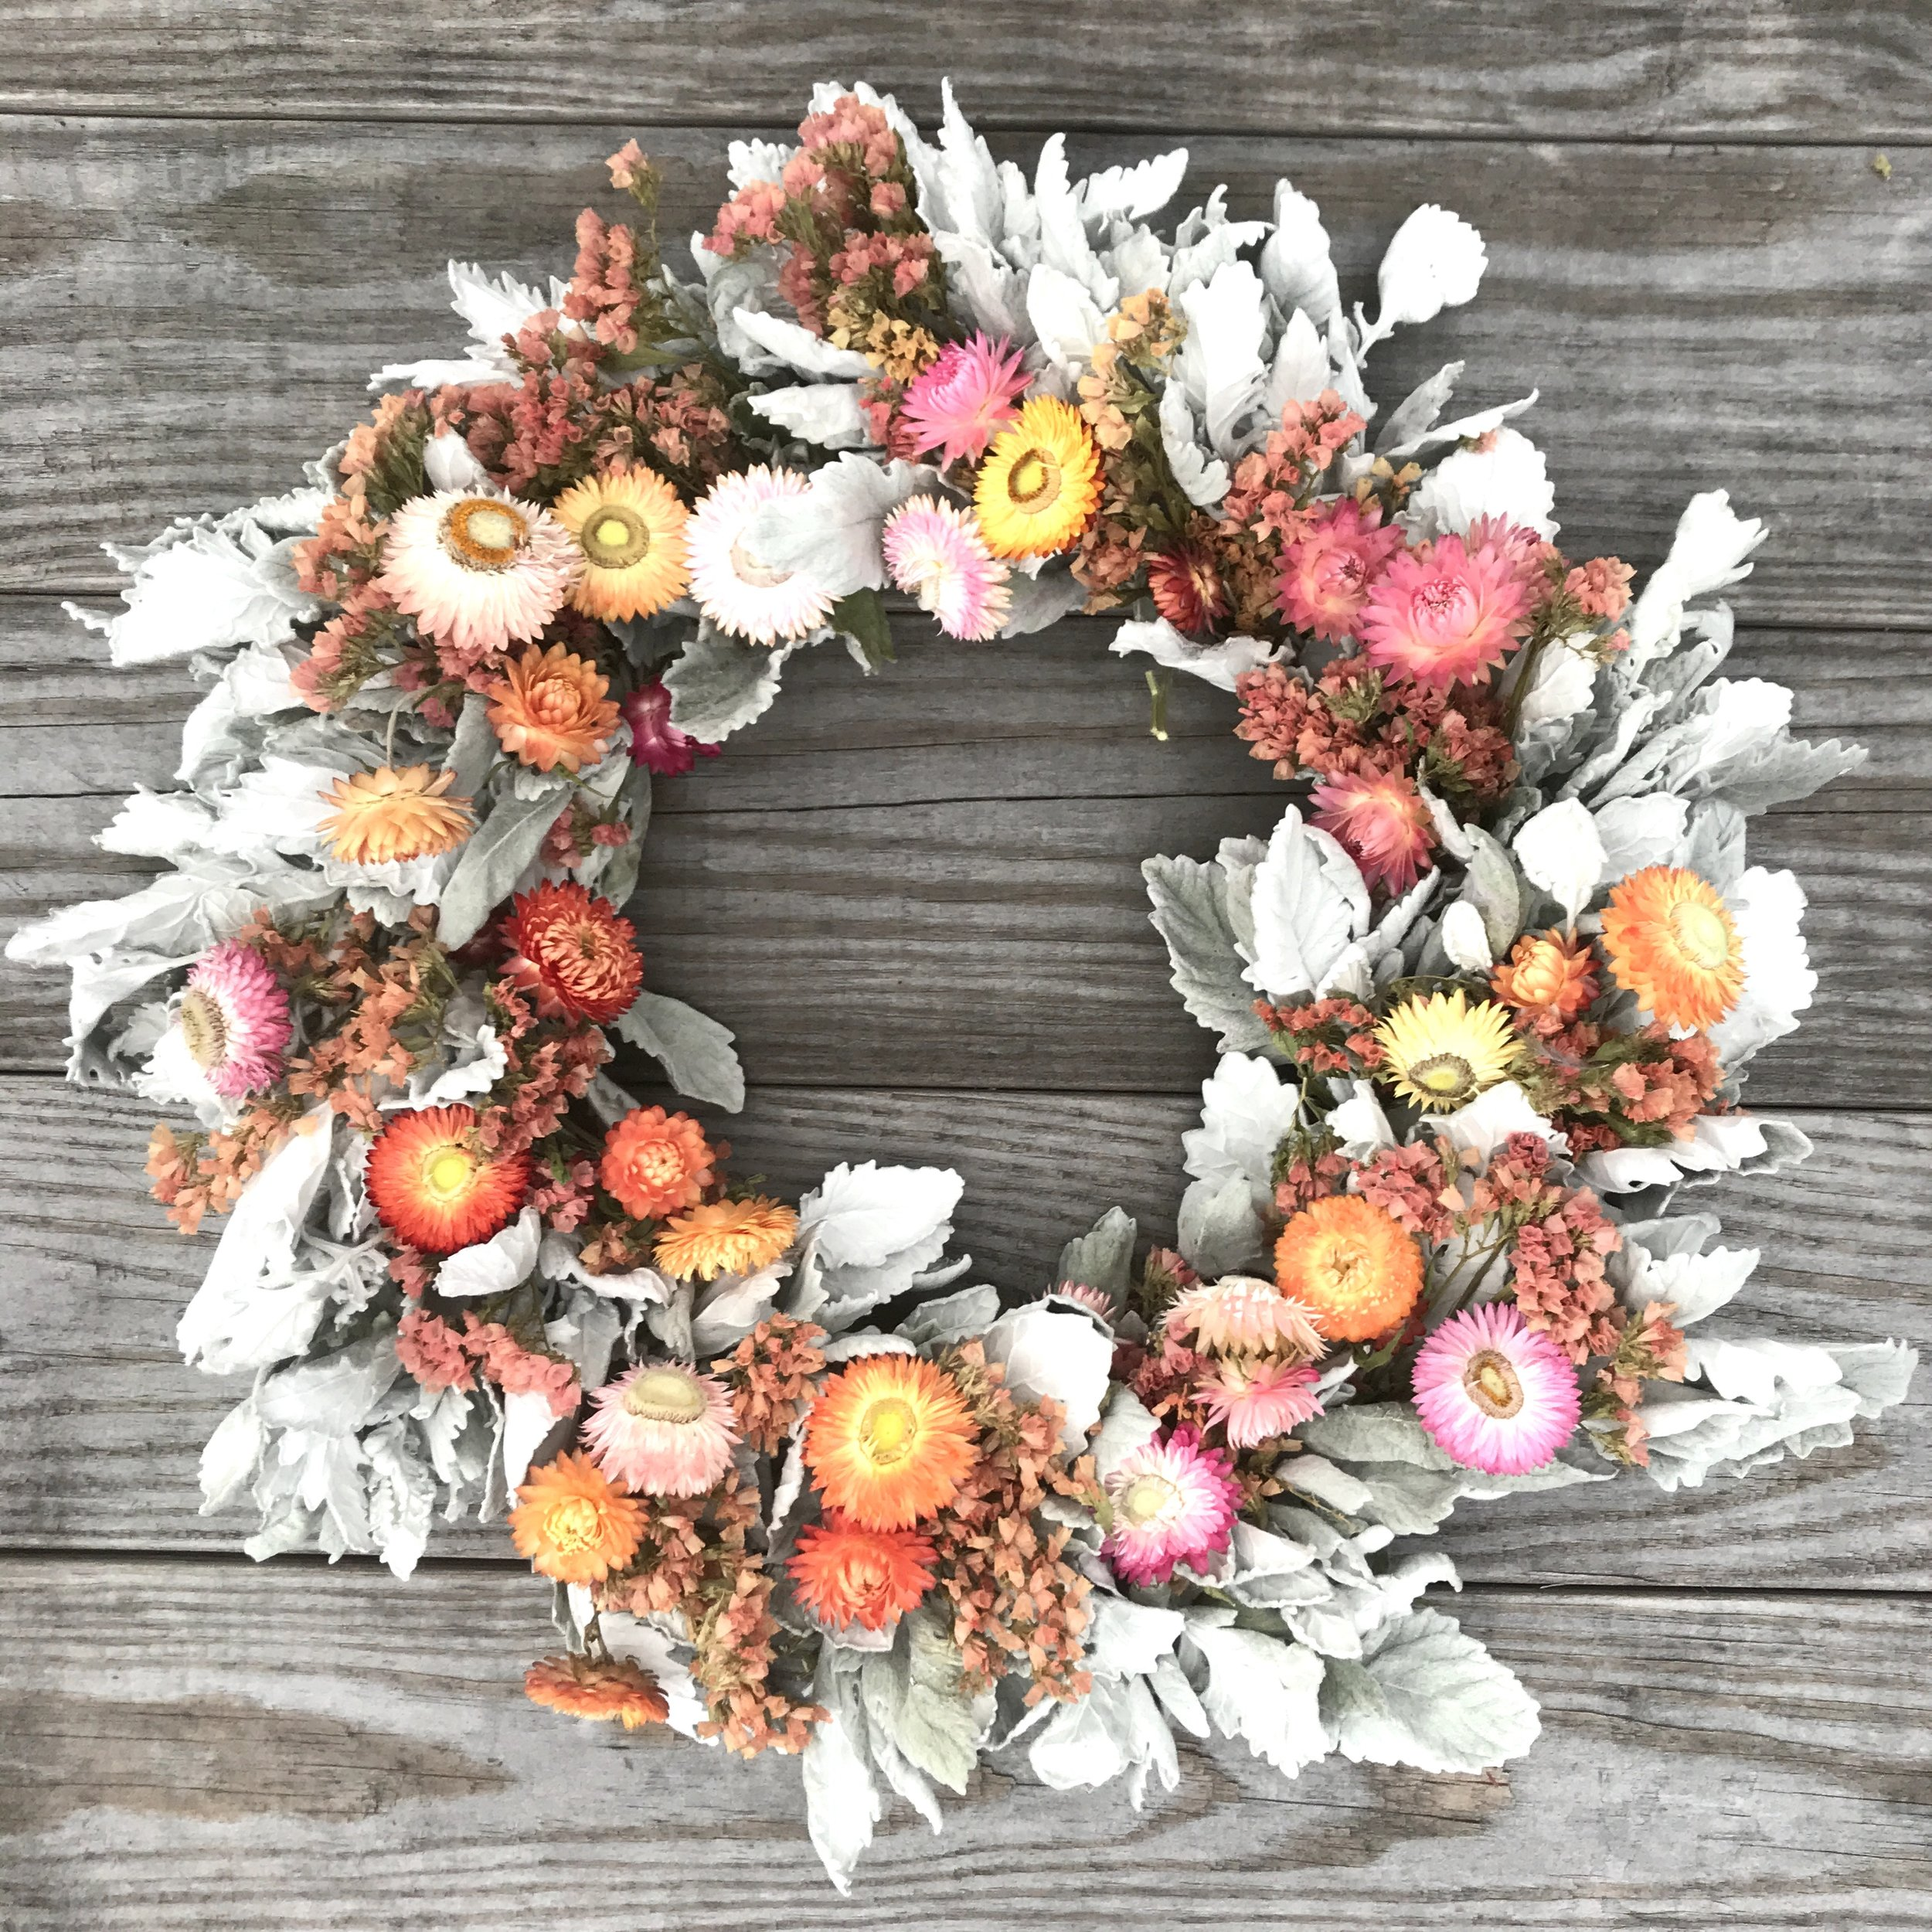 Dusty miller, strawflower, and statice wreath for an early November farmer's market.